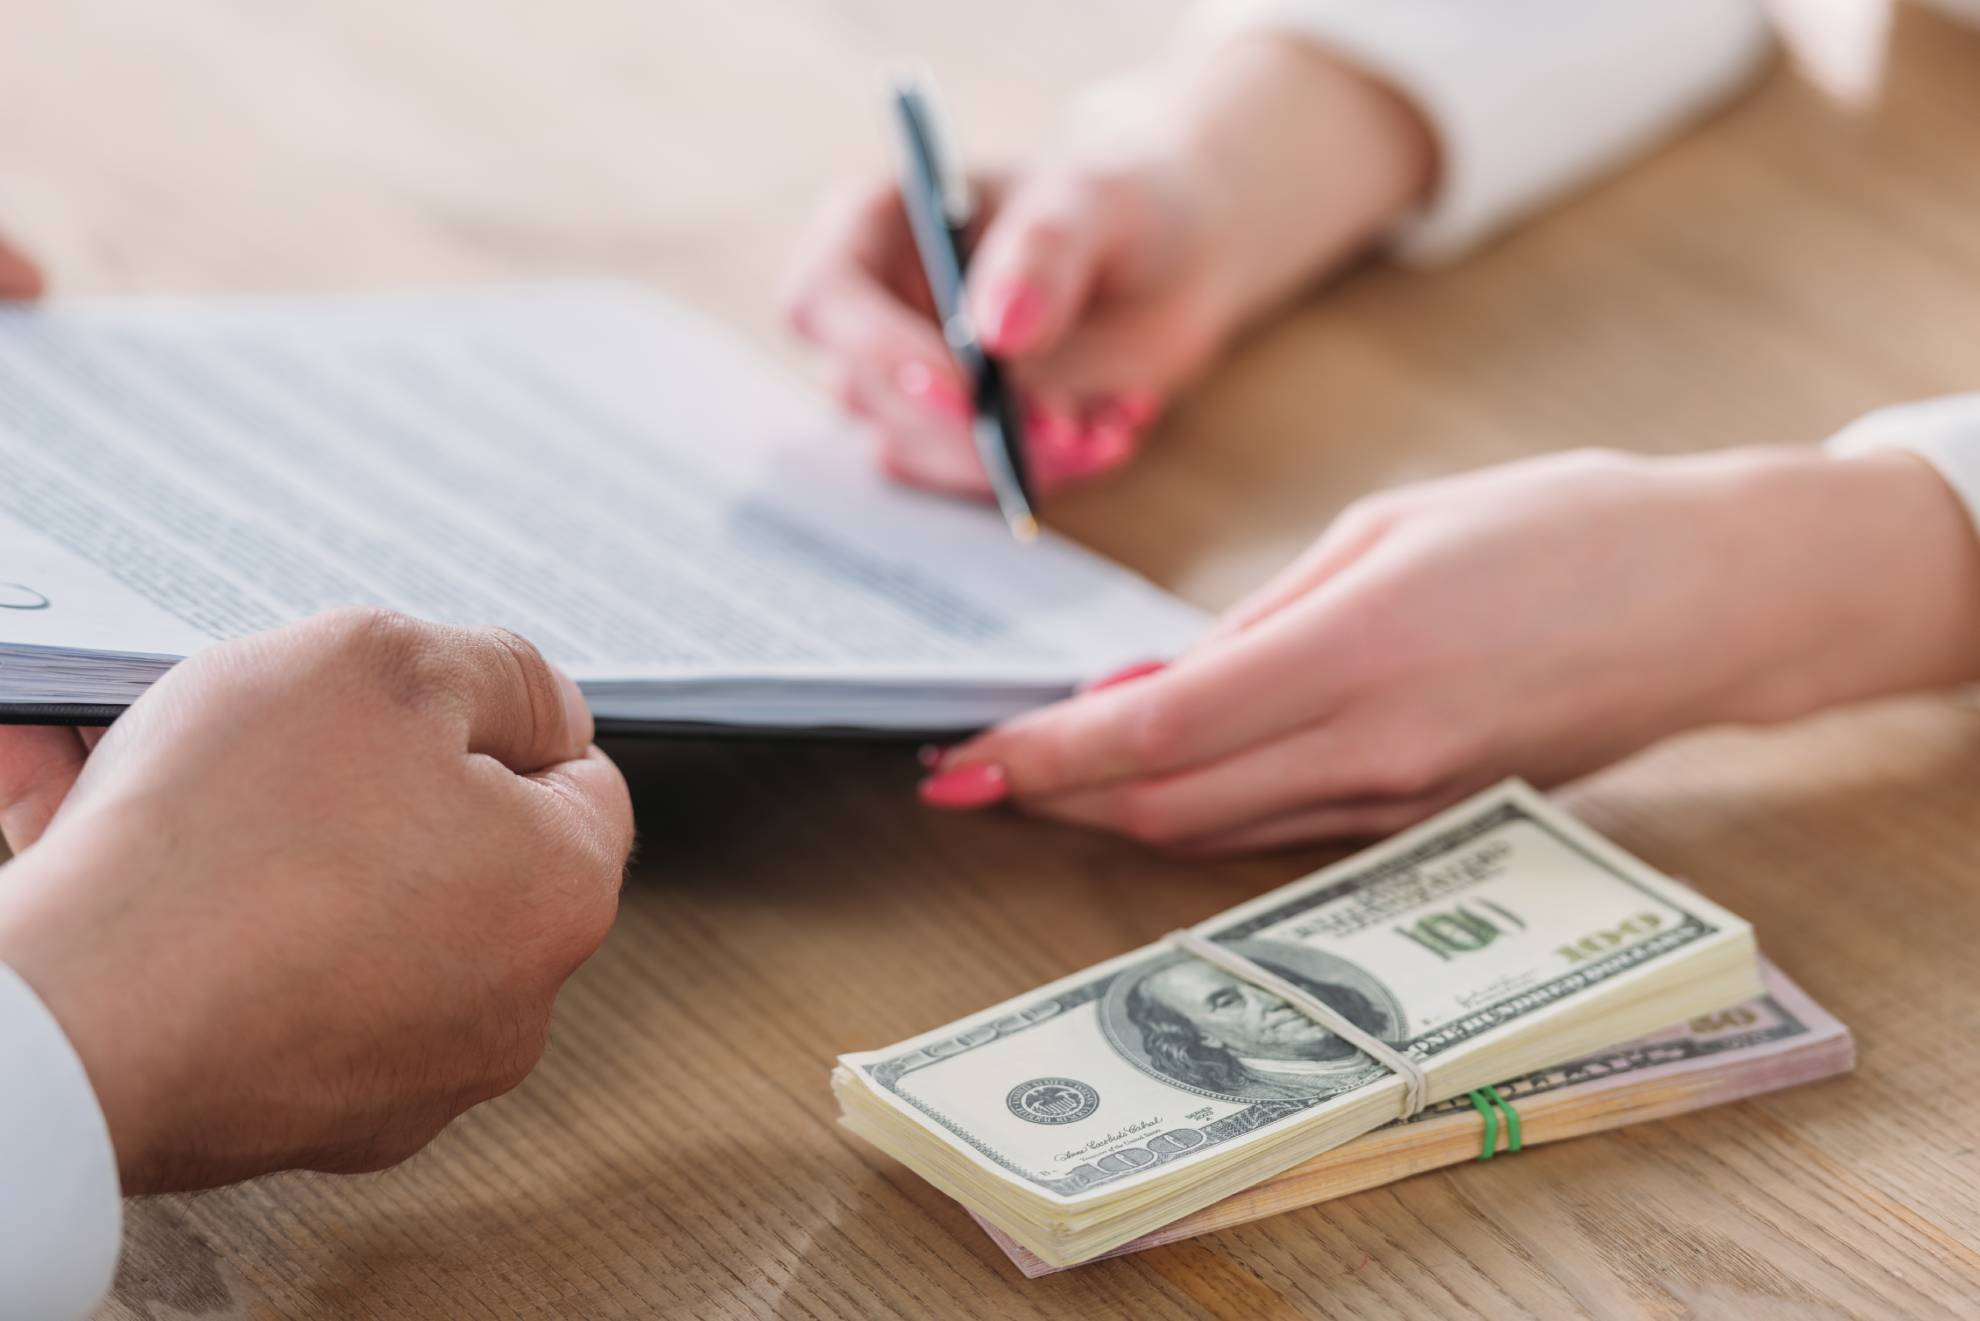 cropped-view-of-woman-signing-loan-agreement-on-cl-ZVXTZSE (1)